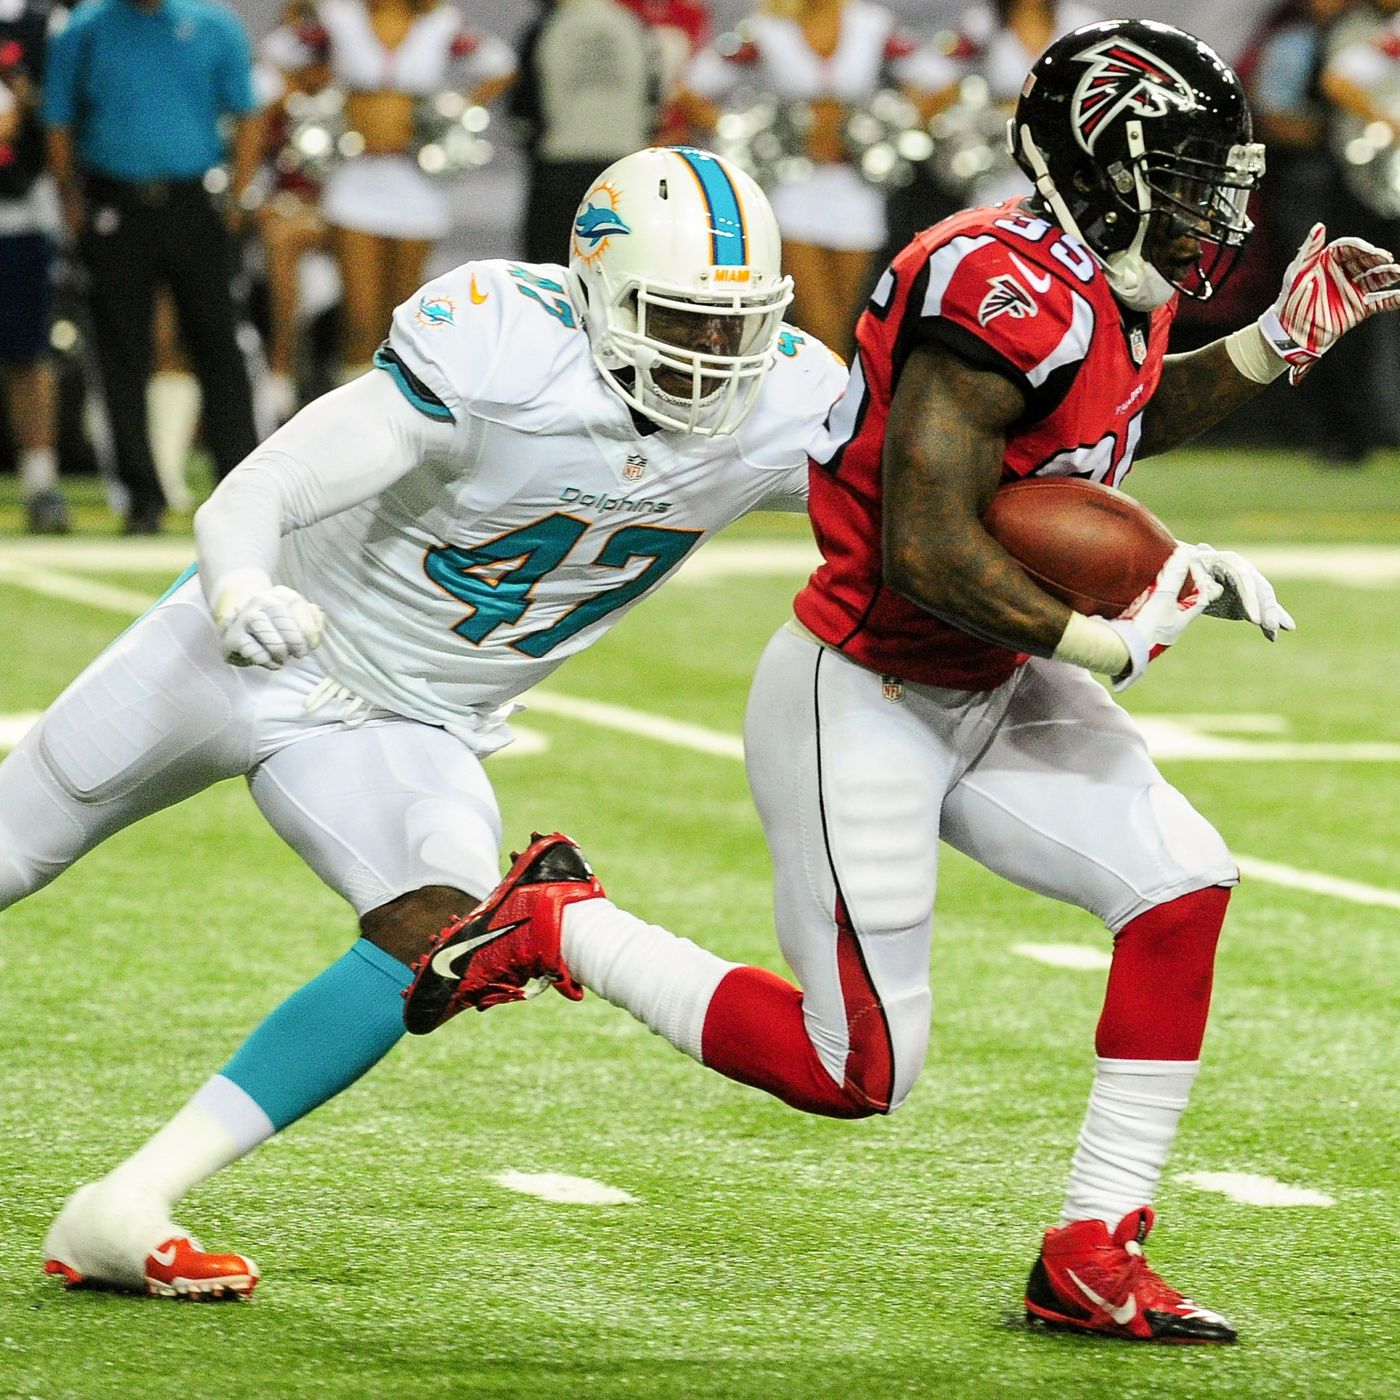 Miami Dolphins Players Change Jersey Numbers - The Phinsider